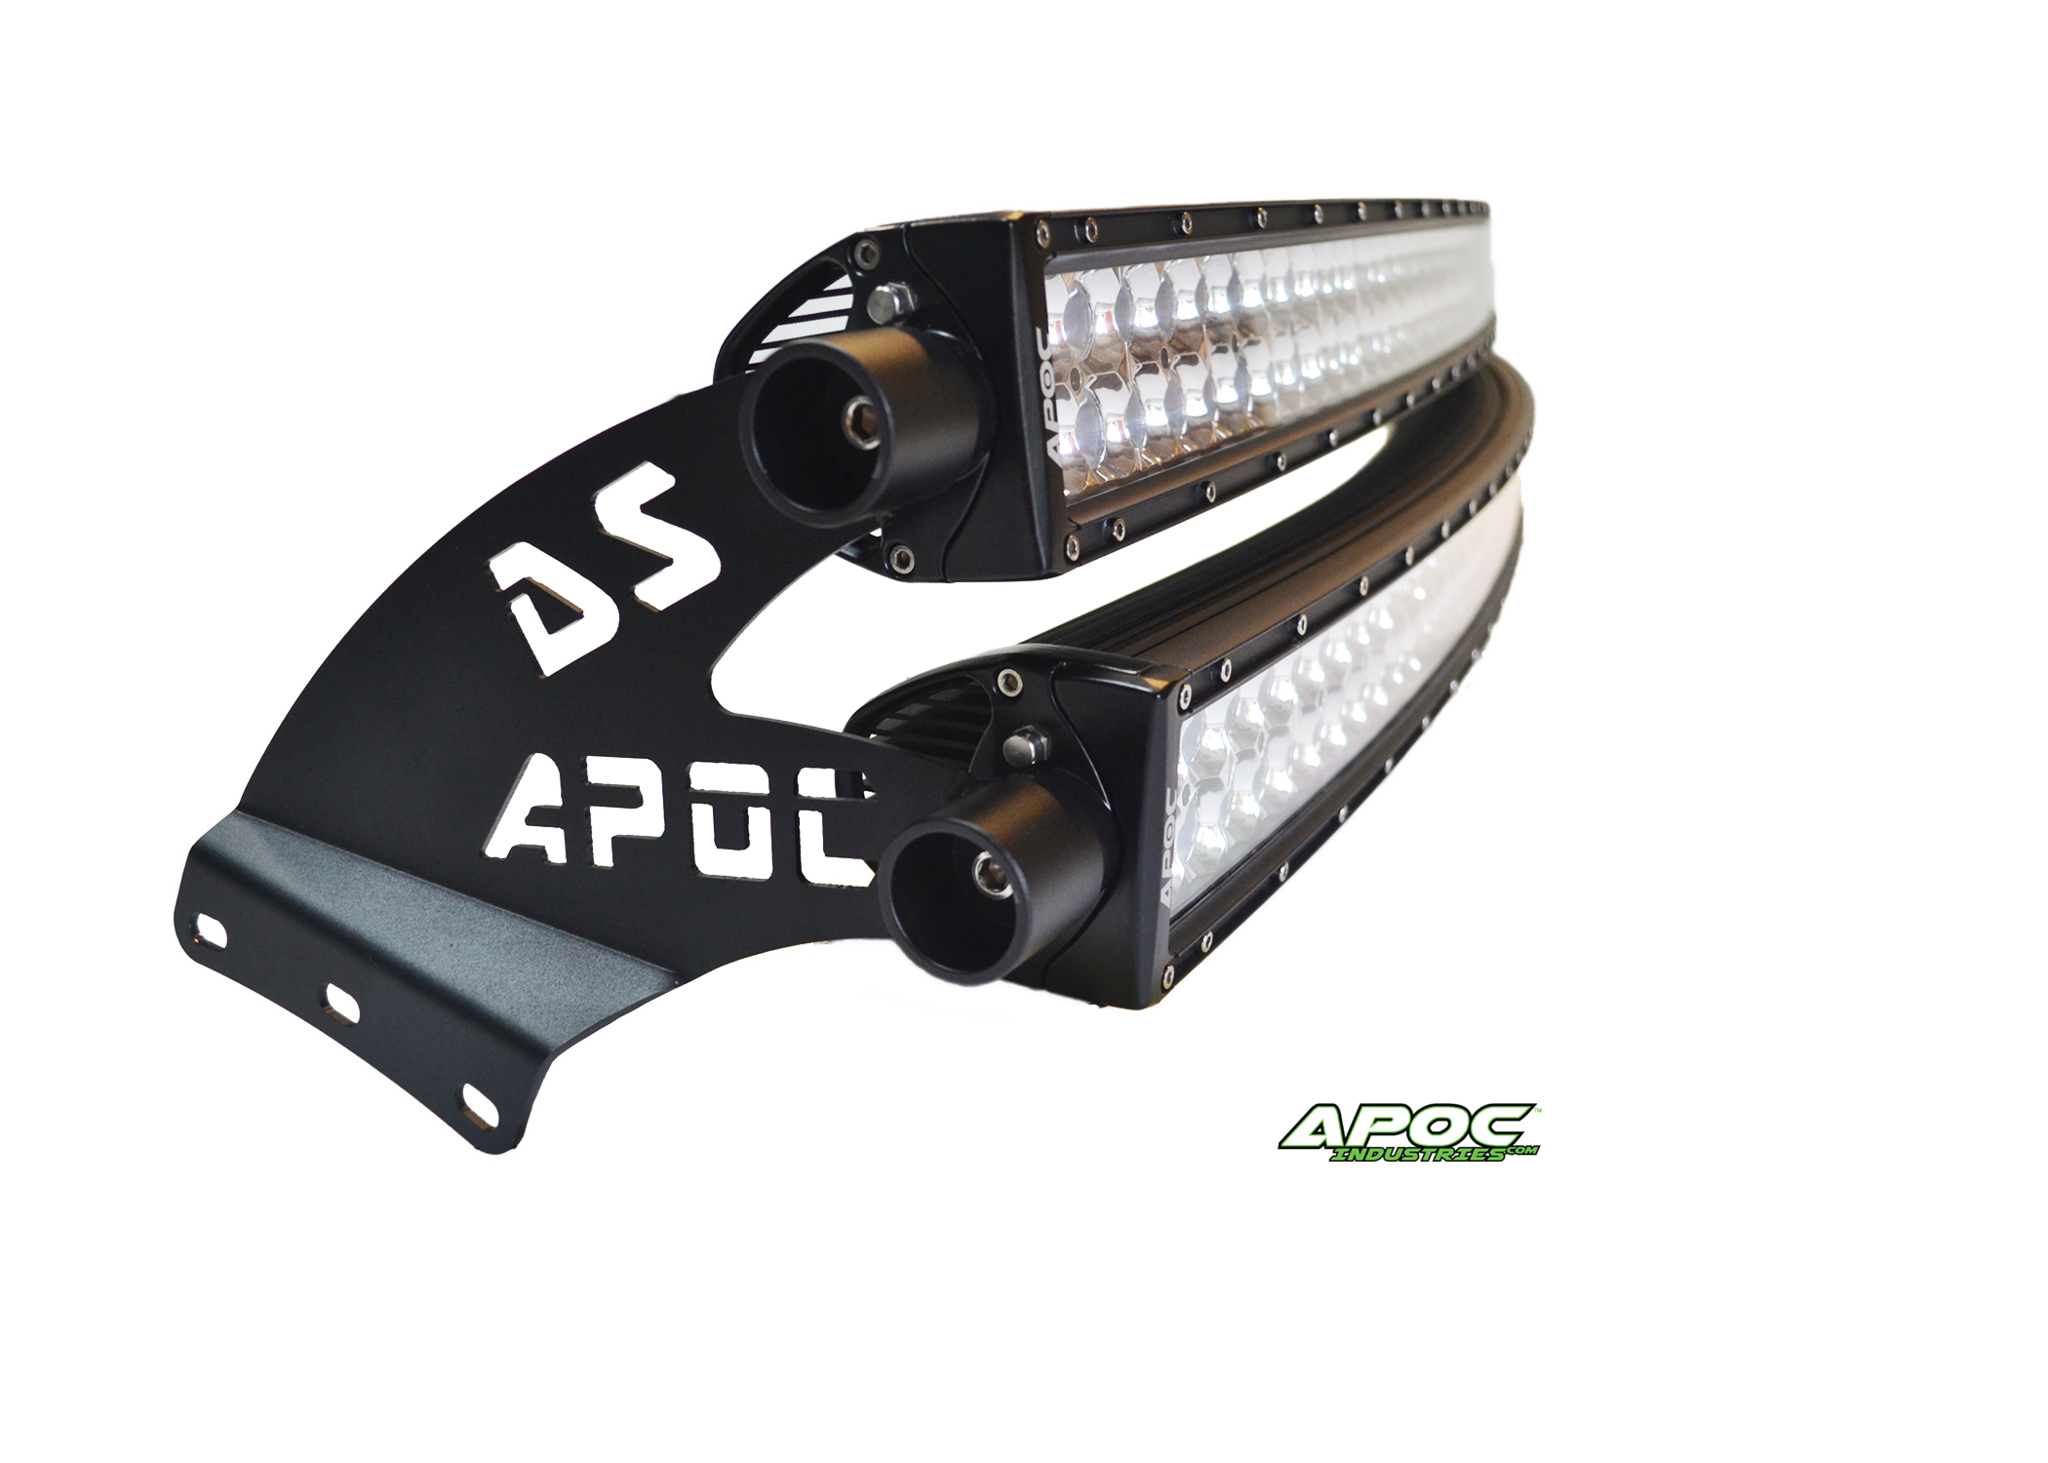 99 15 ford super duty apoc double stack roof mount and light bar kit for